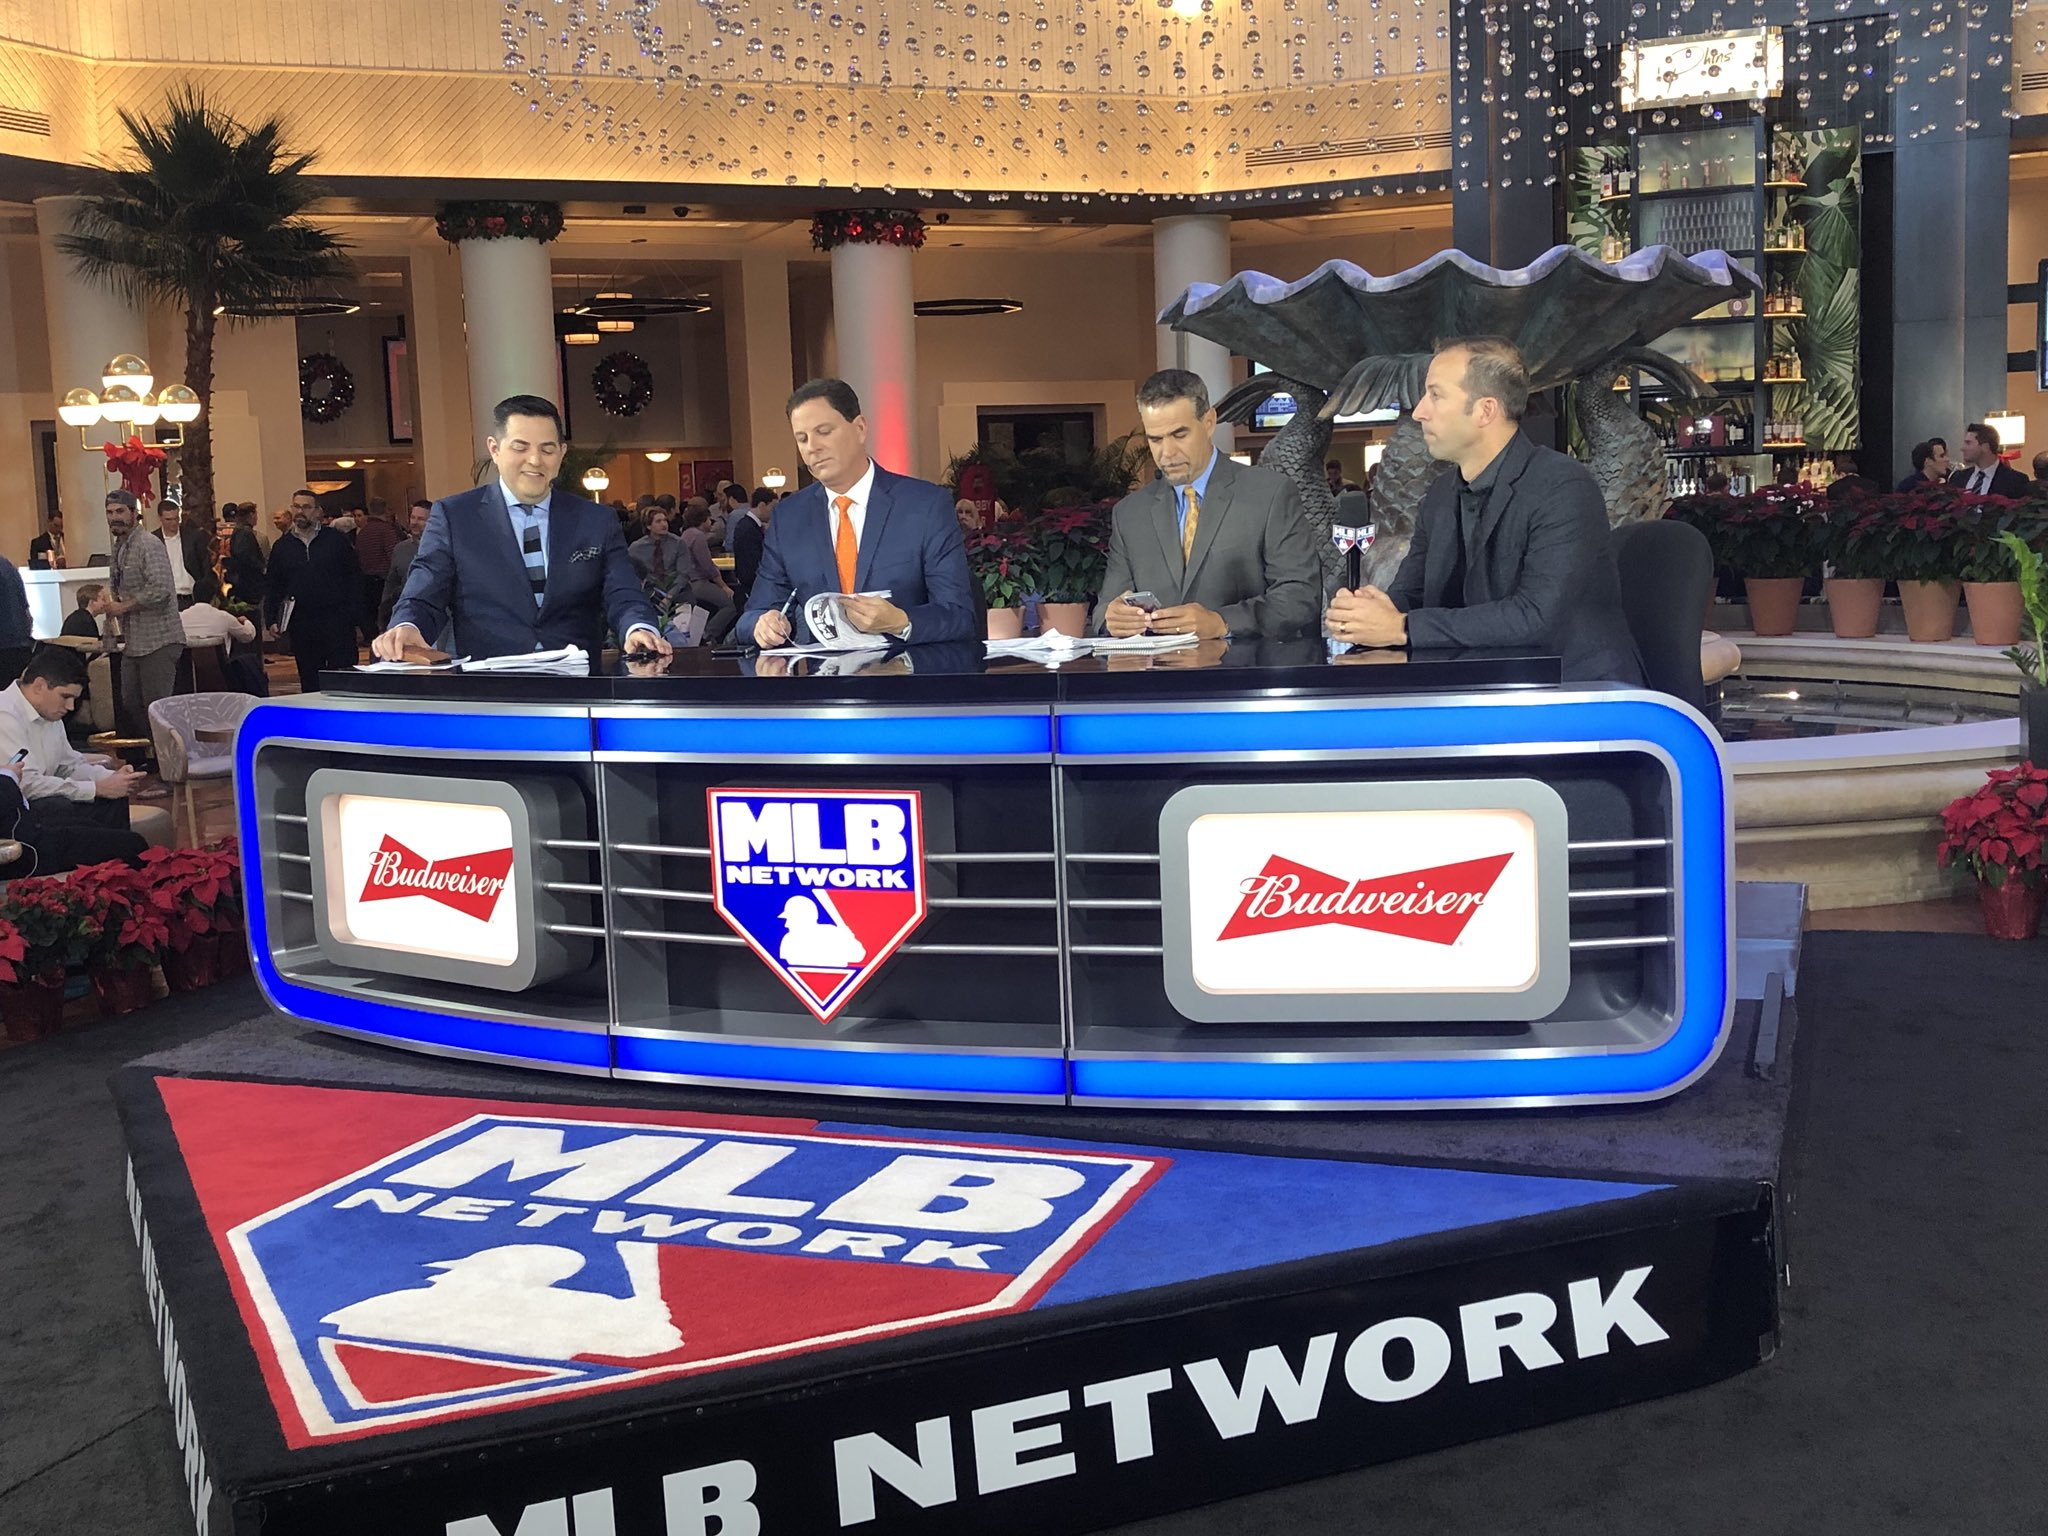 Turn on your TV... Billy Eppler is live RIGHT NOW on @MLBNetwork! #EpplerEra #WinterMeetings https://t.co/WzmBPqepdi